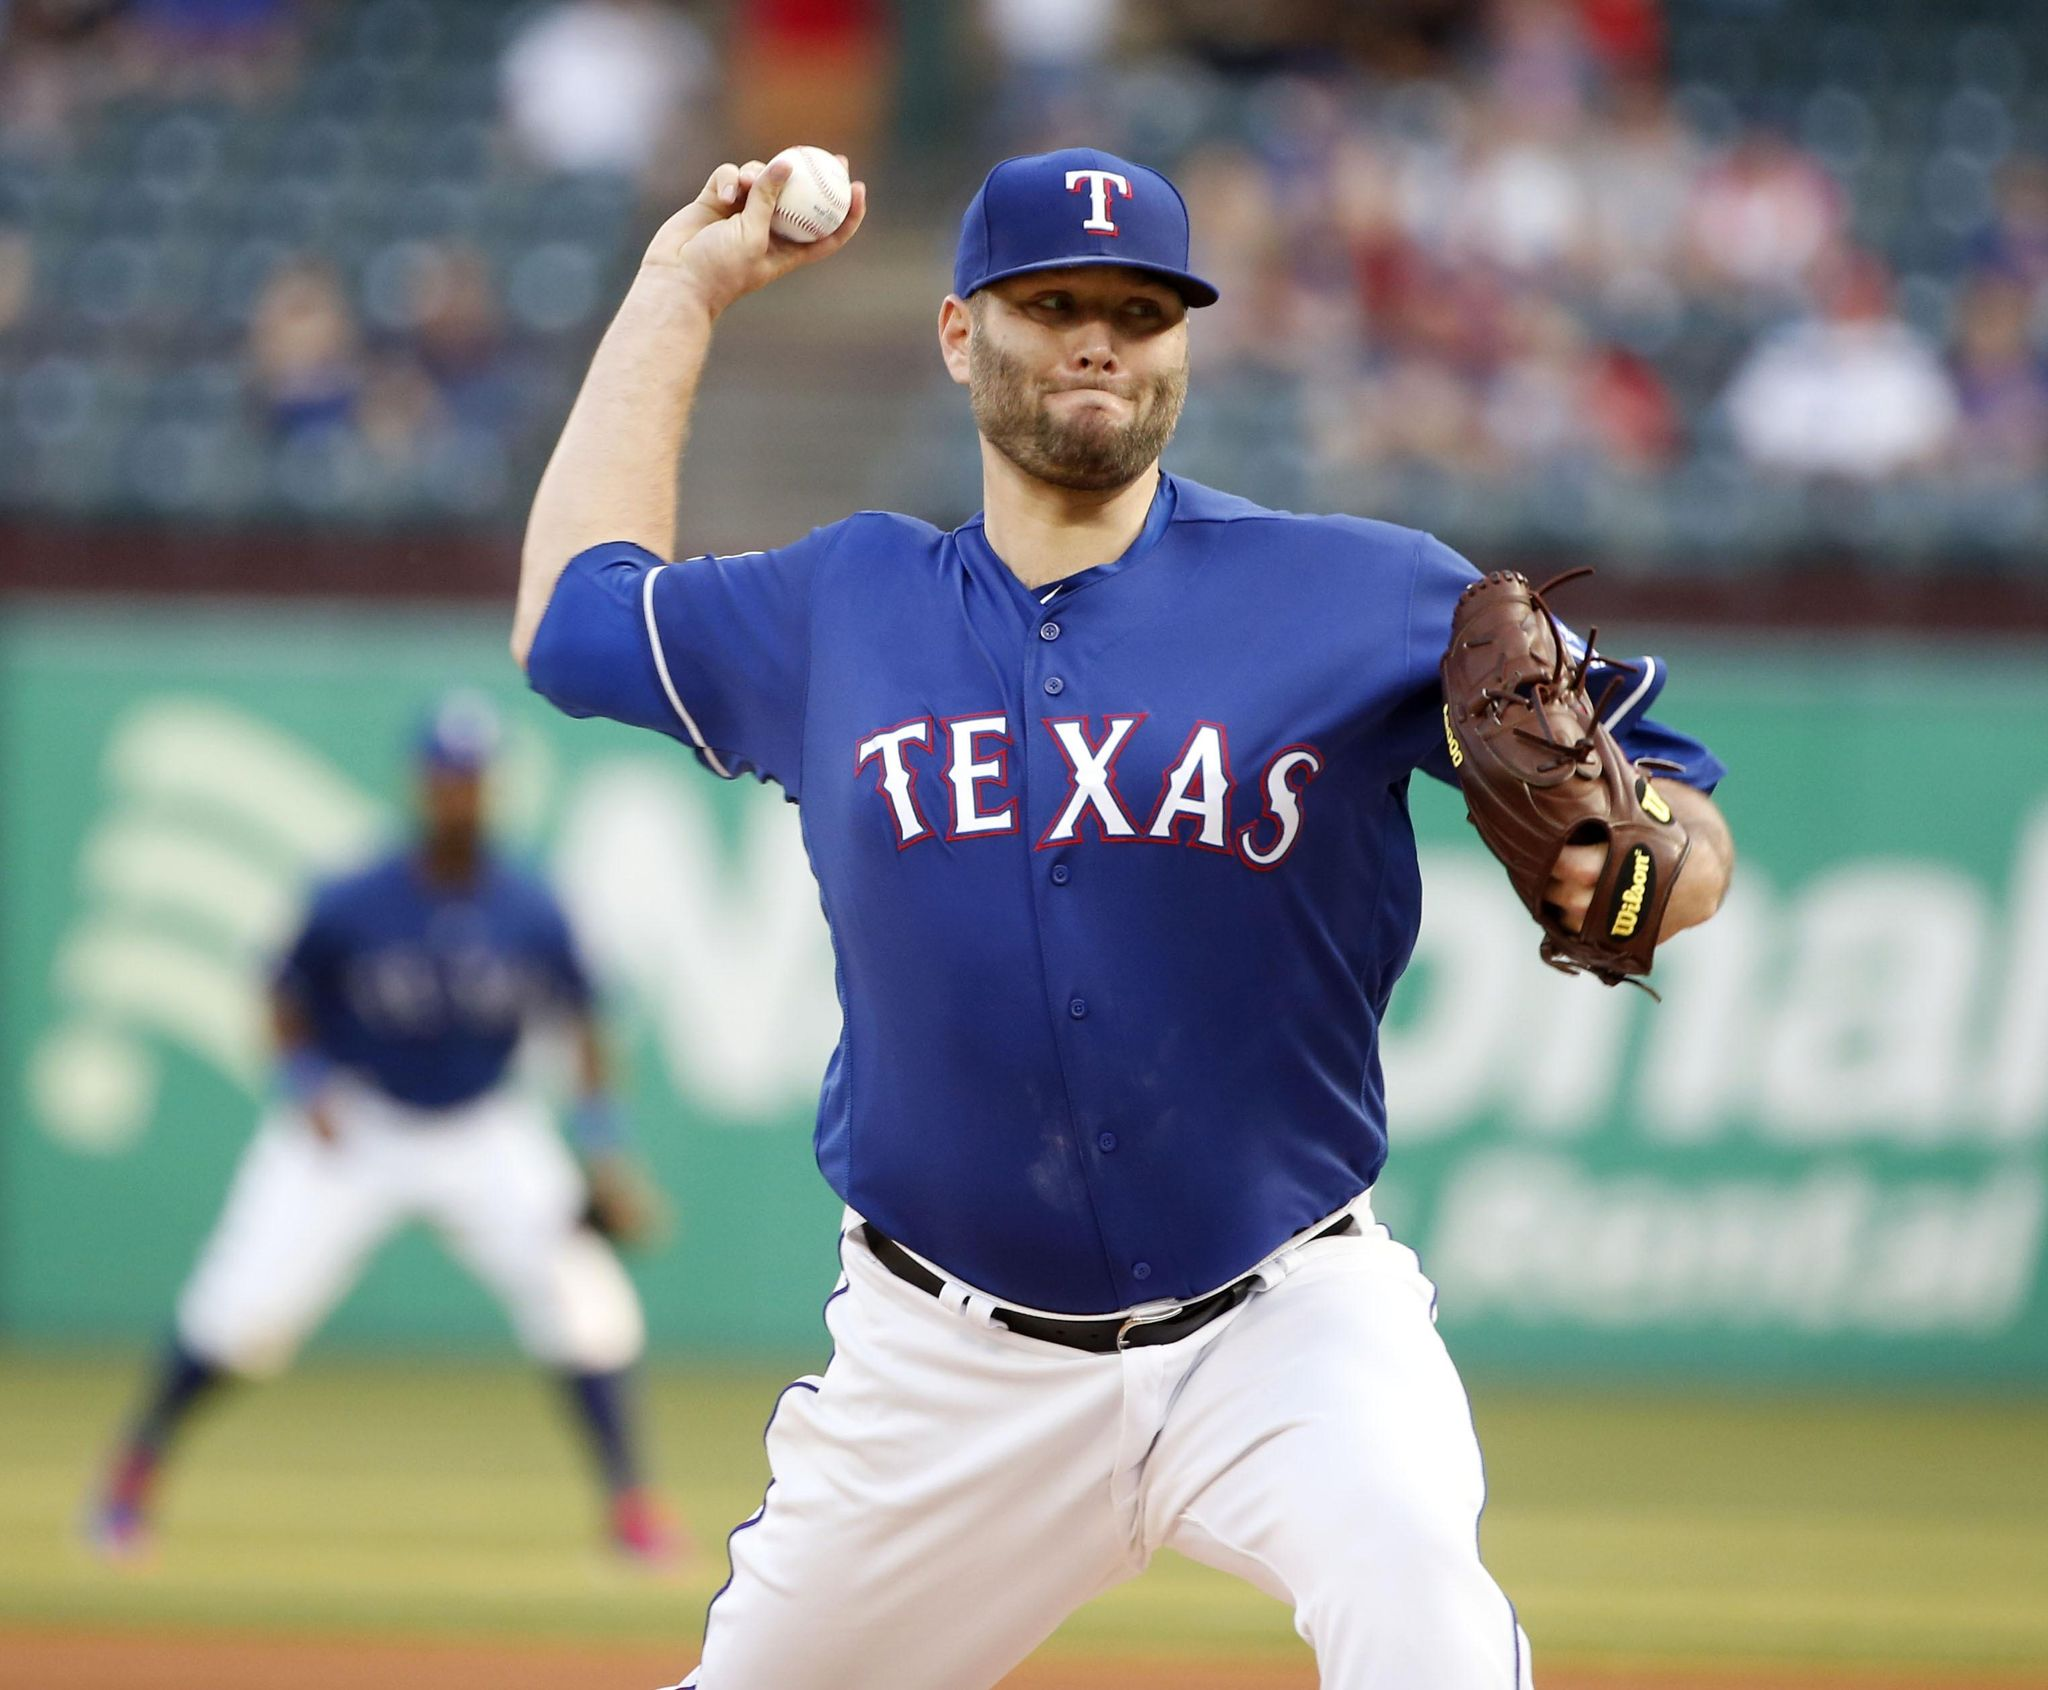 Angels_rangers_baseball_38711_s2048x1690